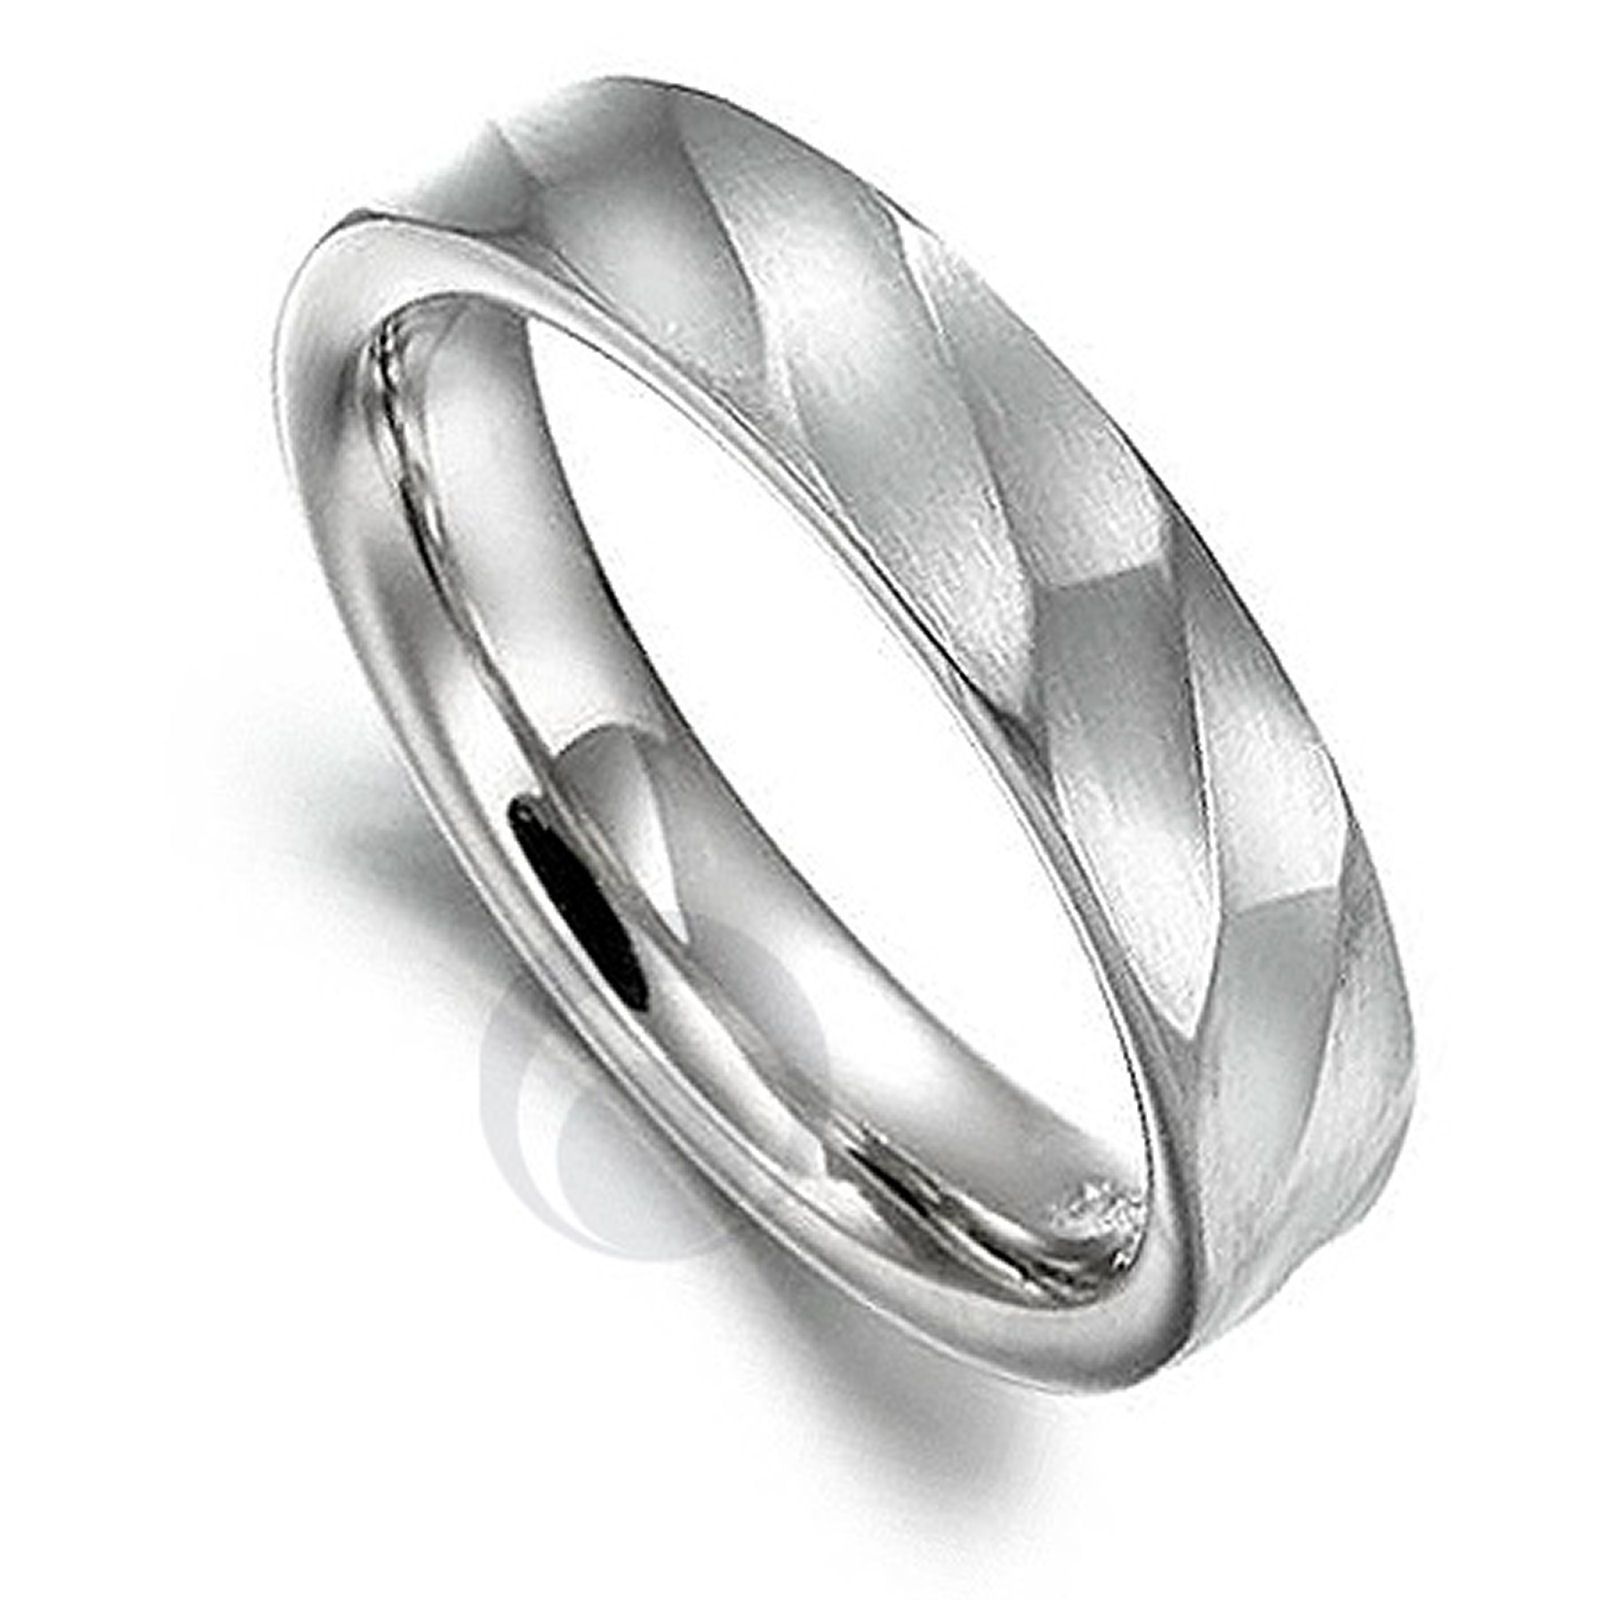 Platinum Male Wedding Rings Bedroom and Living Room Image